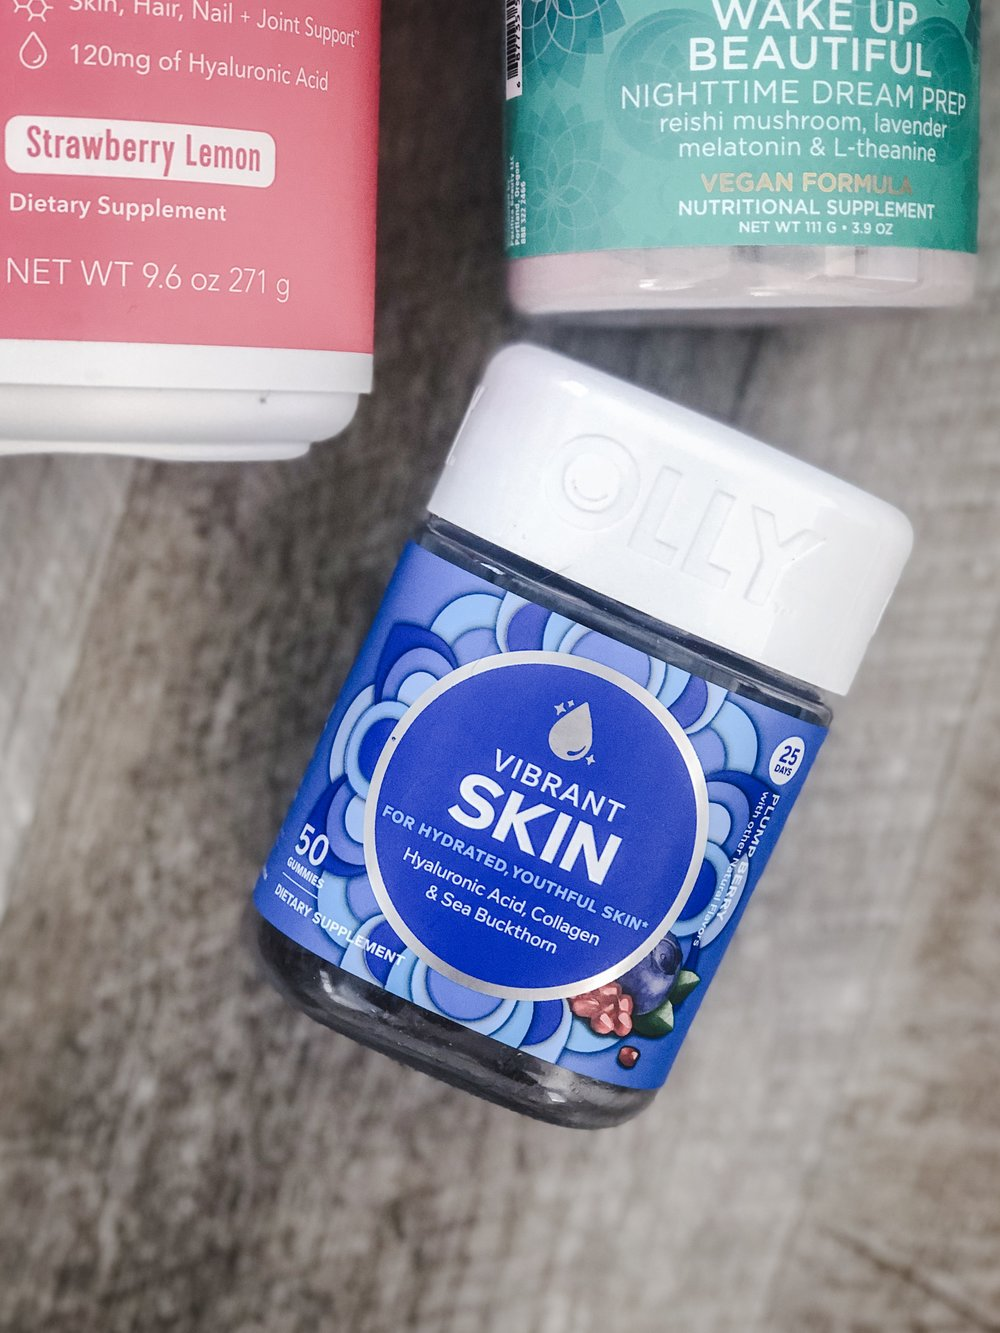 target finds, cruelty free, target does it again, olly skin gummies, vibrant skin, youthful skin, hyaluronic acid, collage, sea buckthorn, skin food, vital proteins, pacifica beauty powder